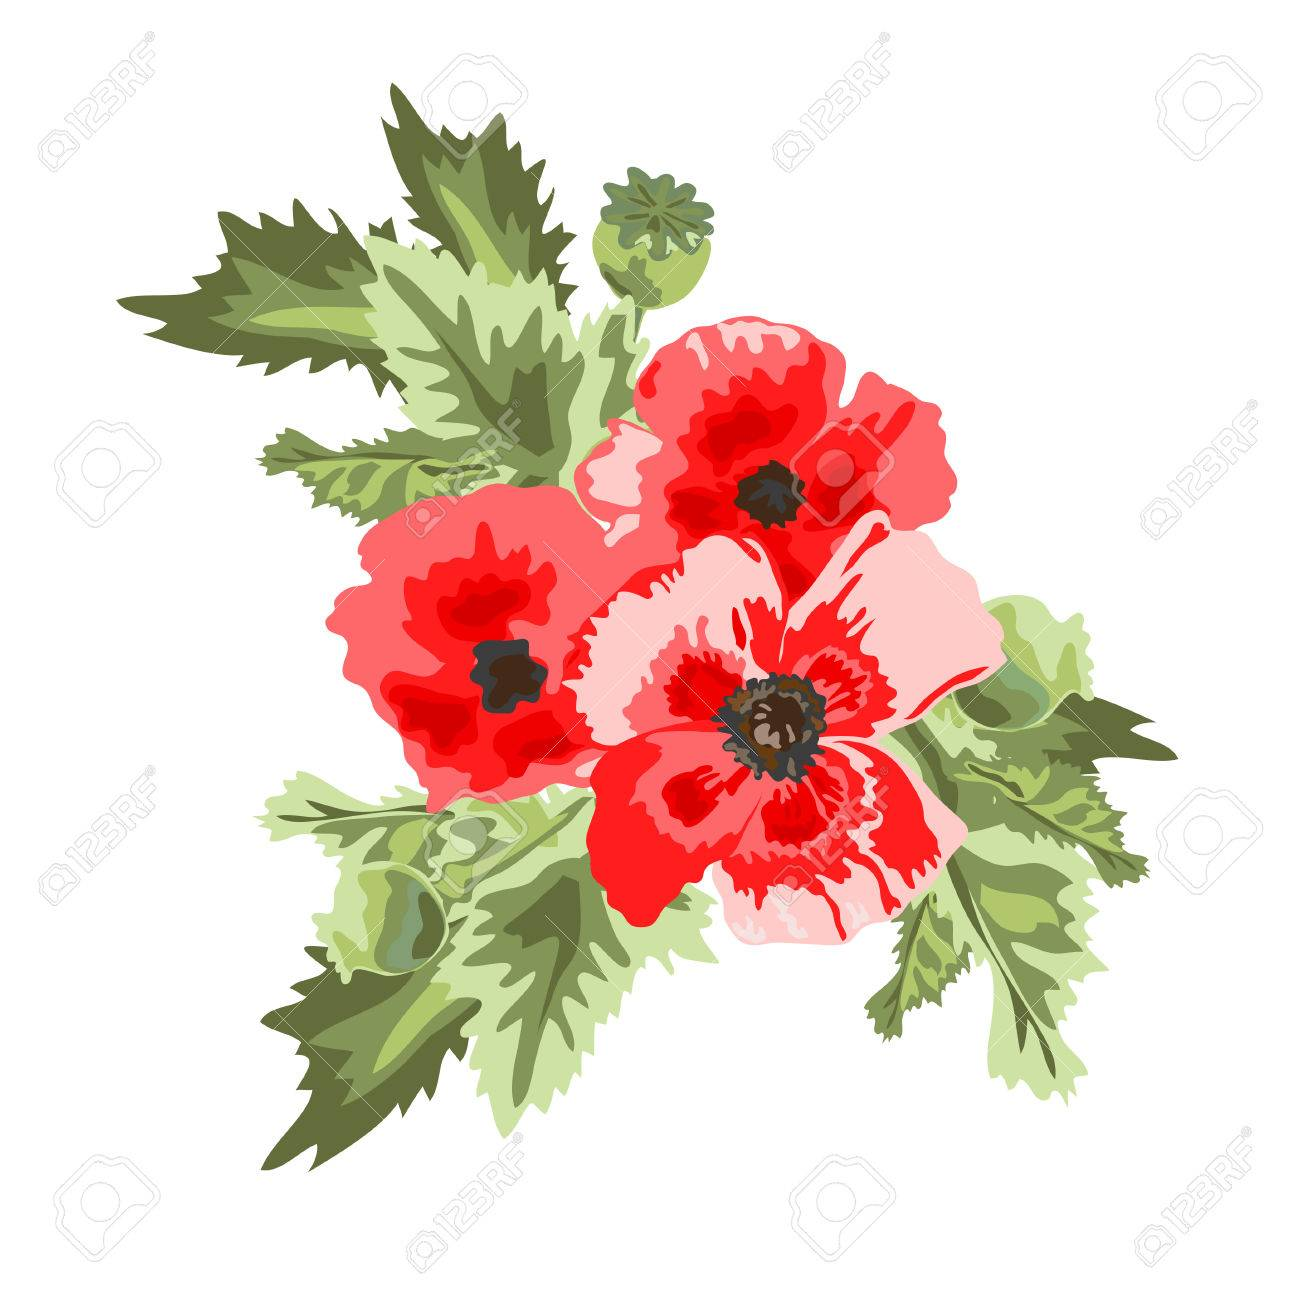 Elegant Bouquet With Red Poppy Flowers Design Element Can Be